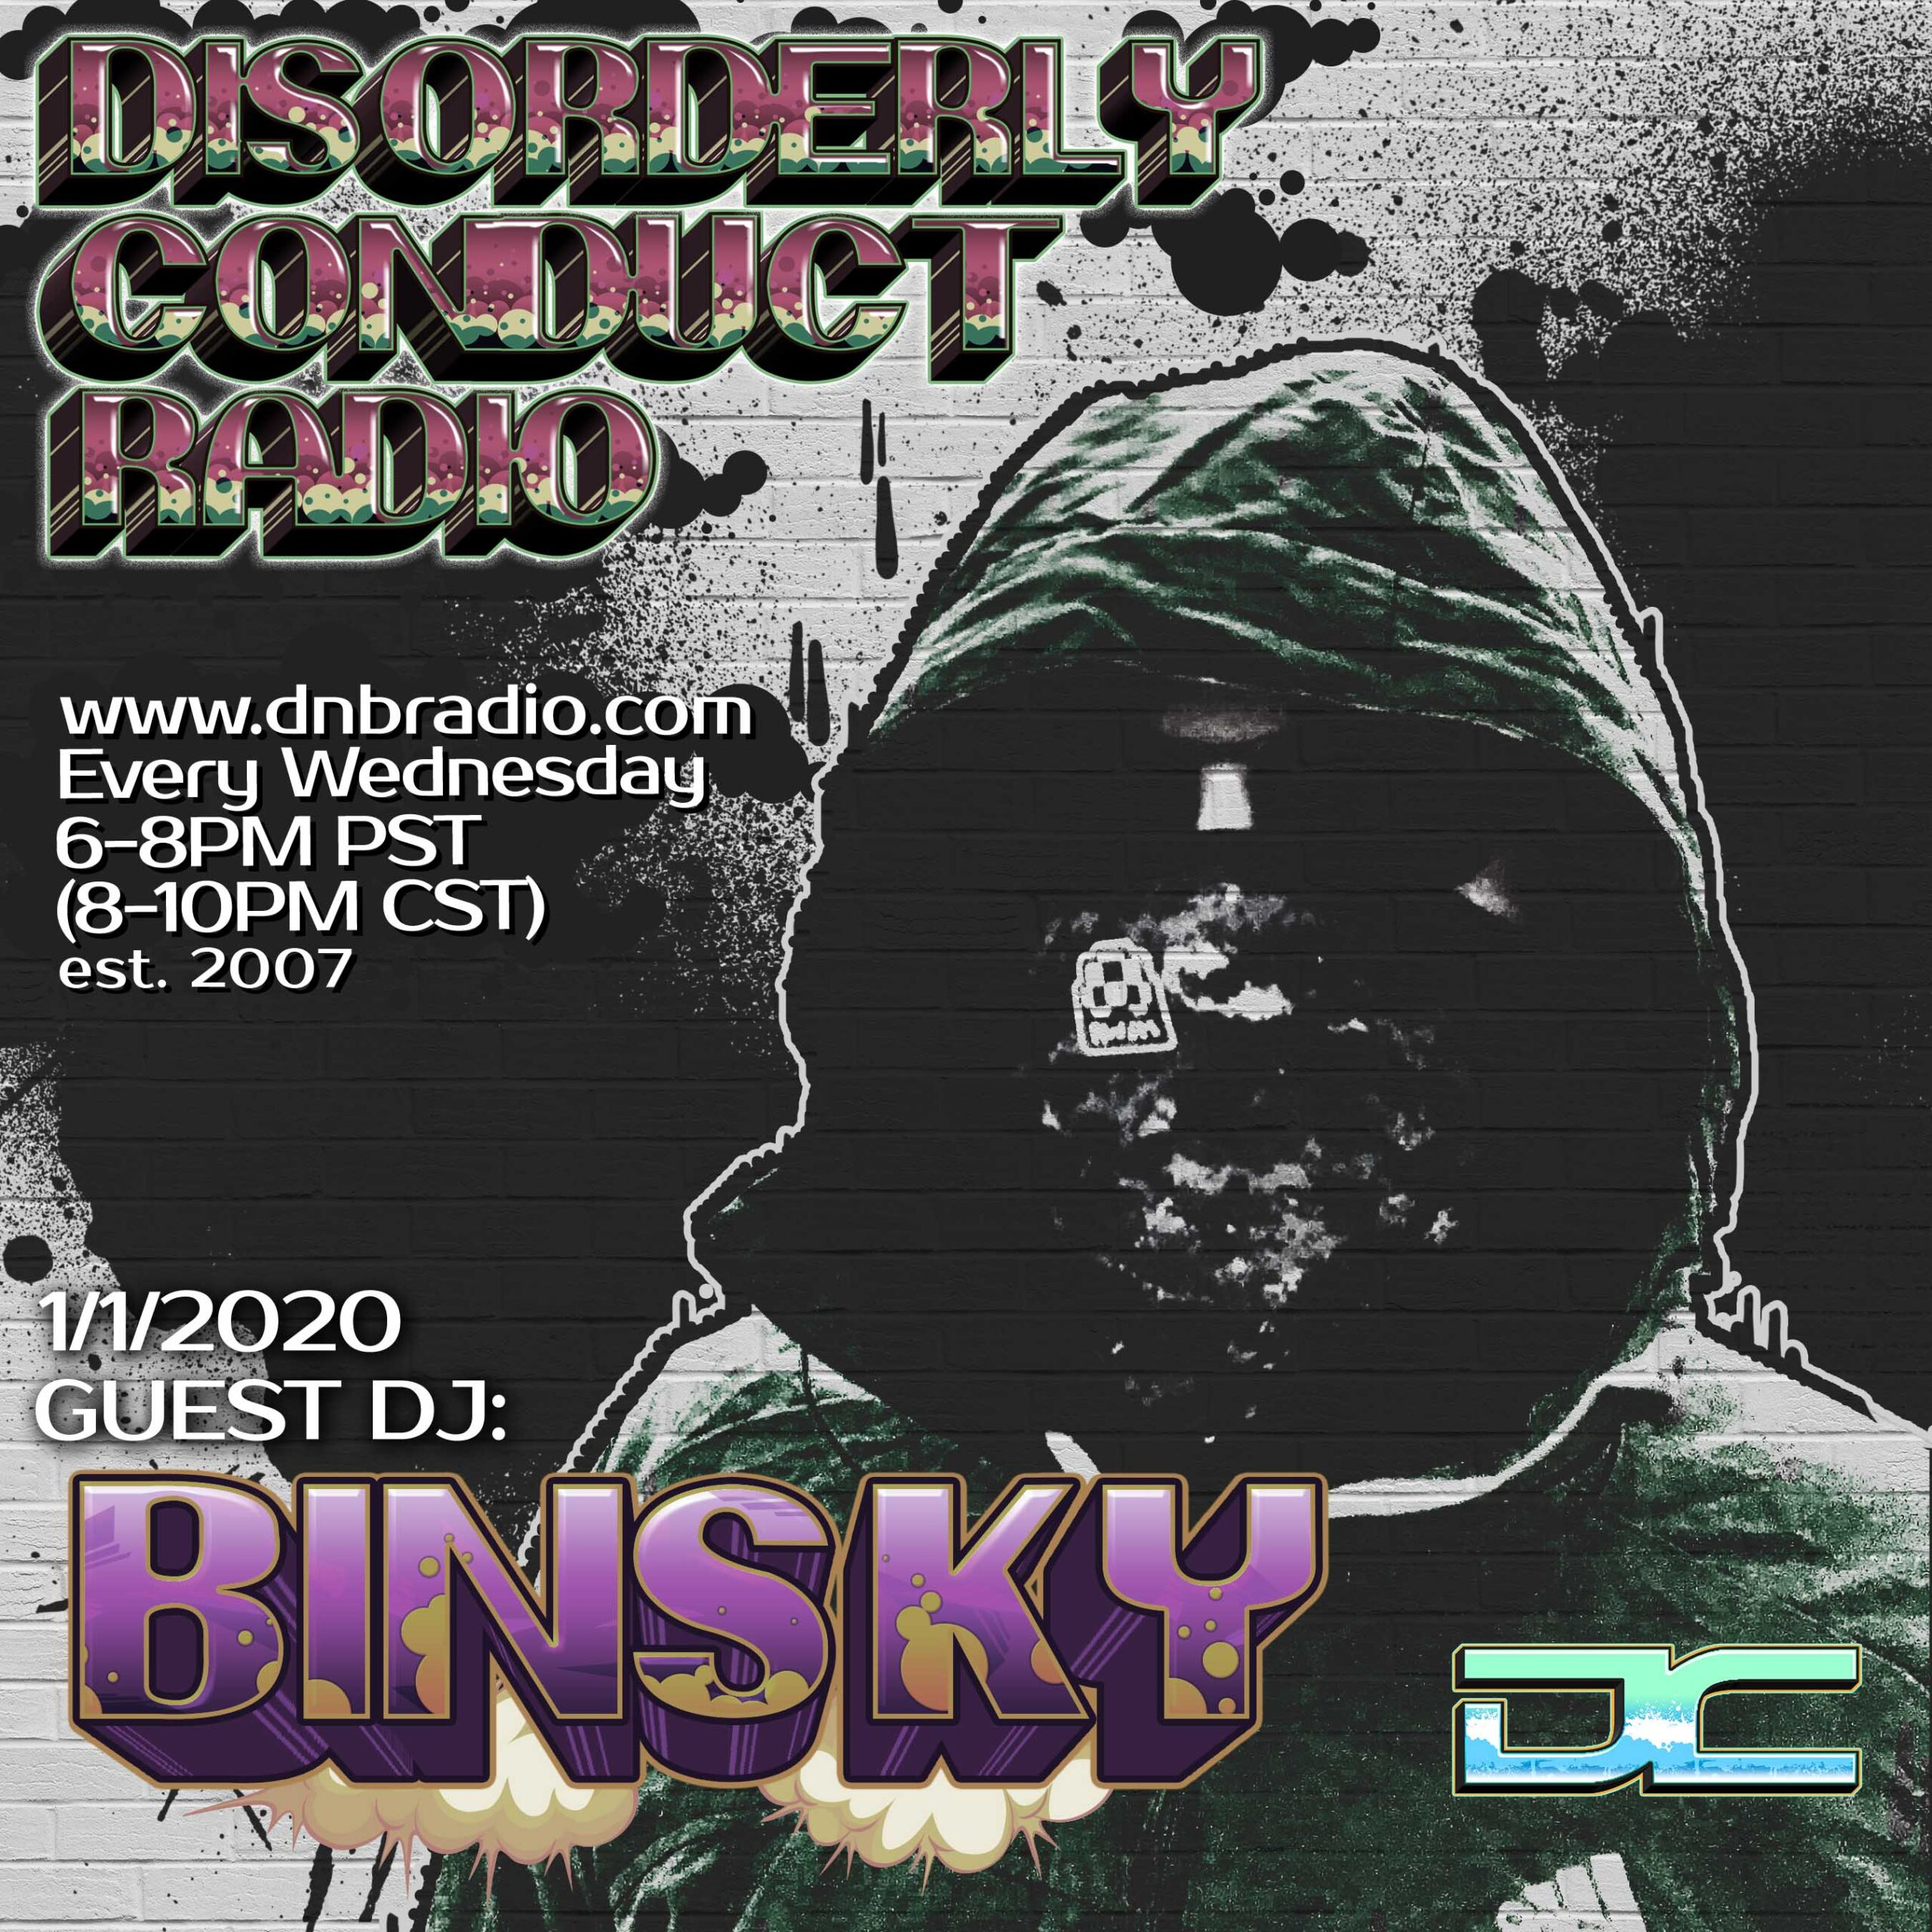 Mr. Solve and Binksy – Disorderly Conduct Radio 091119